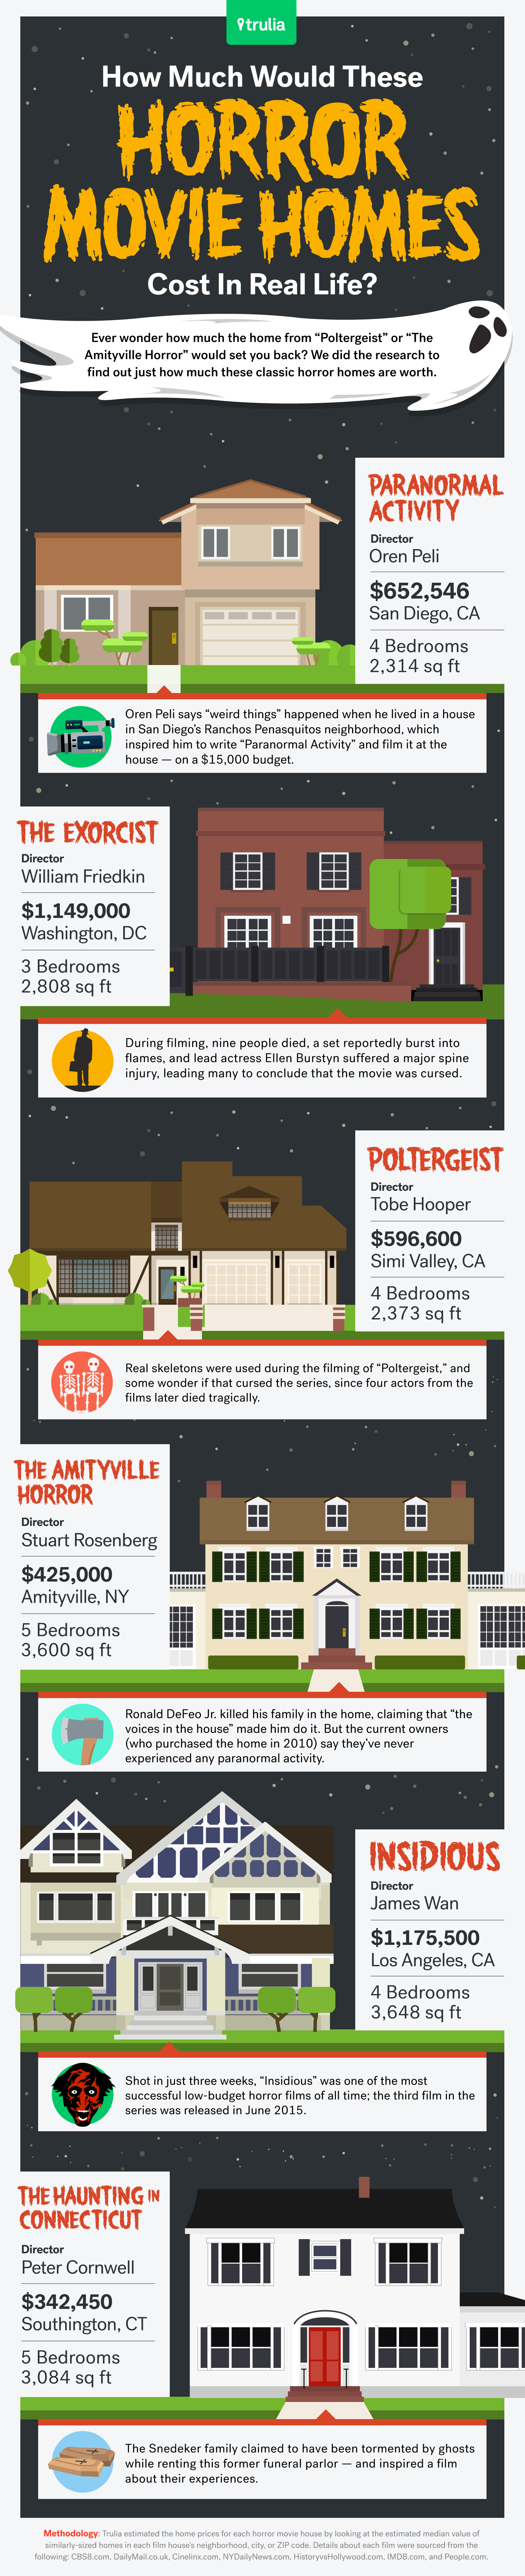 How Much Would These Horror Movie Homes Cost In Real Life?